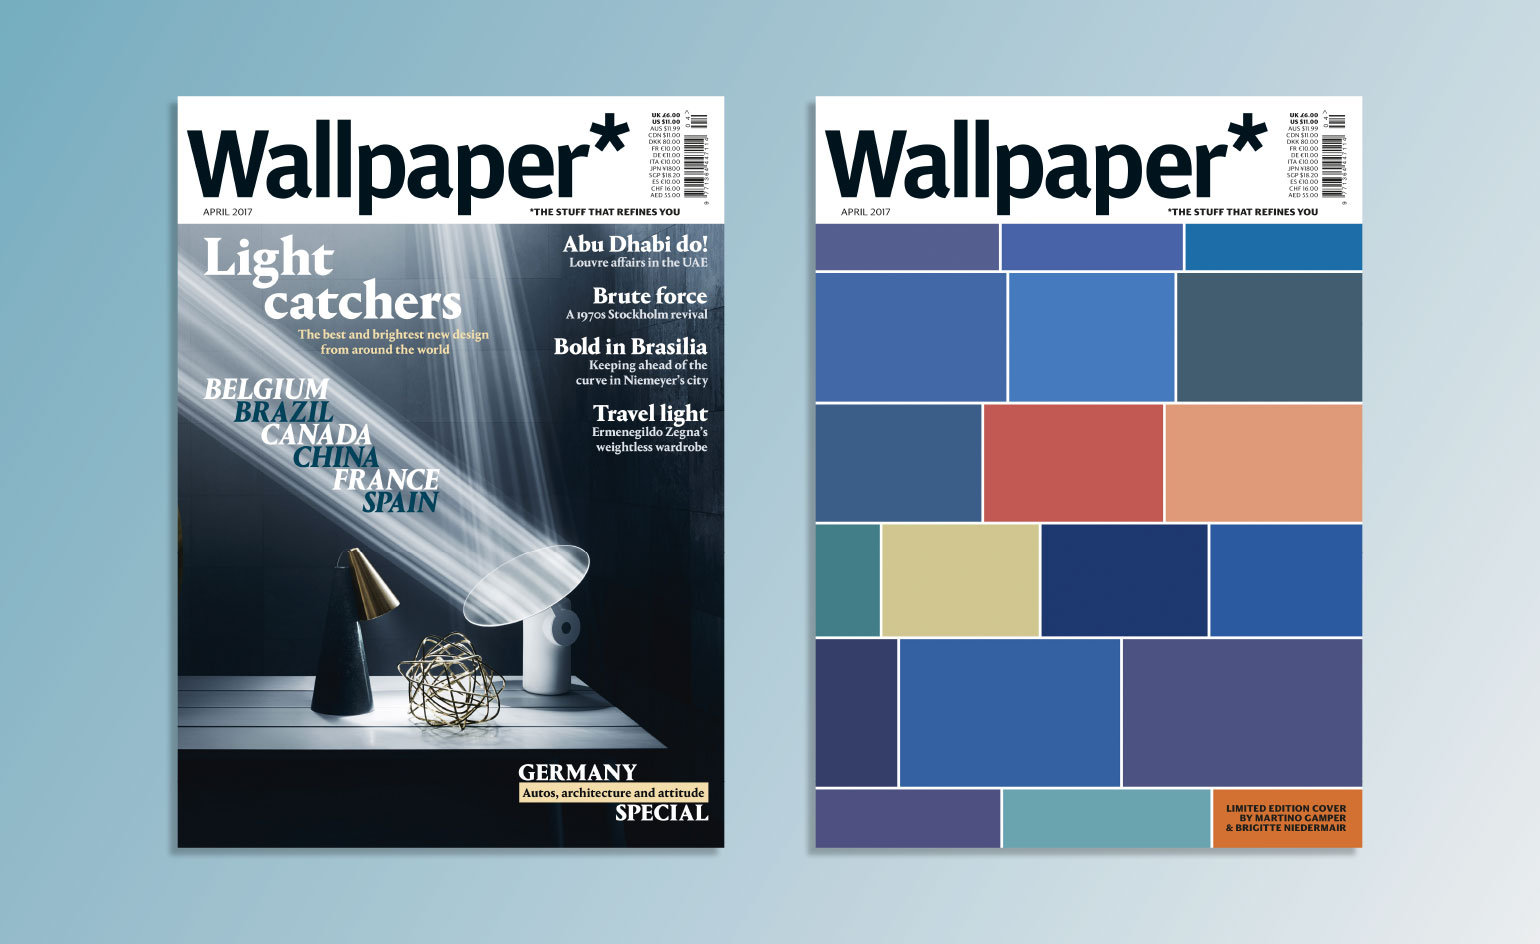 Wallpaper Magazine Kitchen Design From Dazzling New Design To Teutonic Shifts See Inside